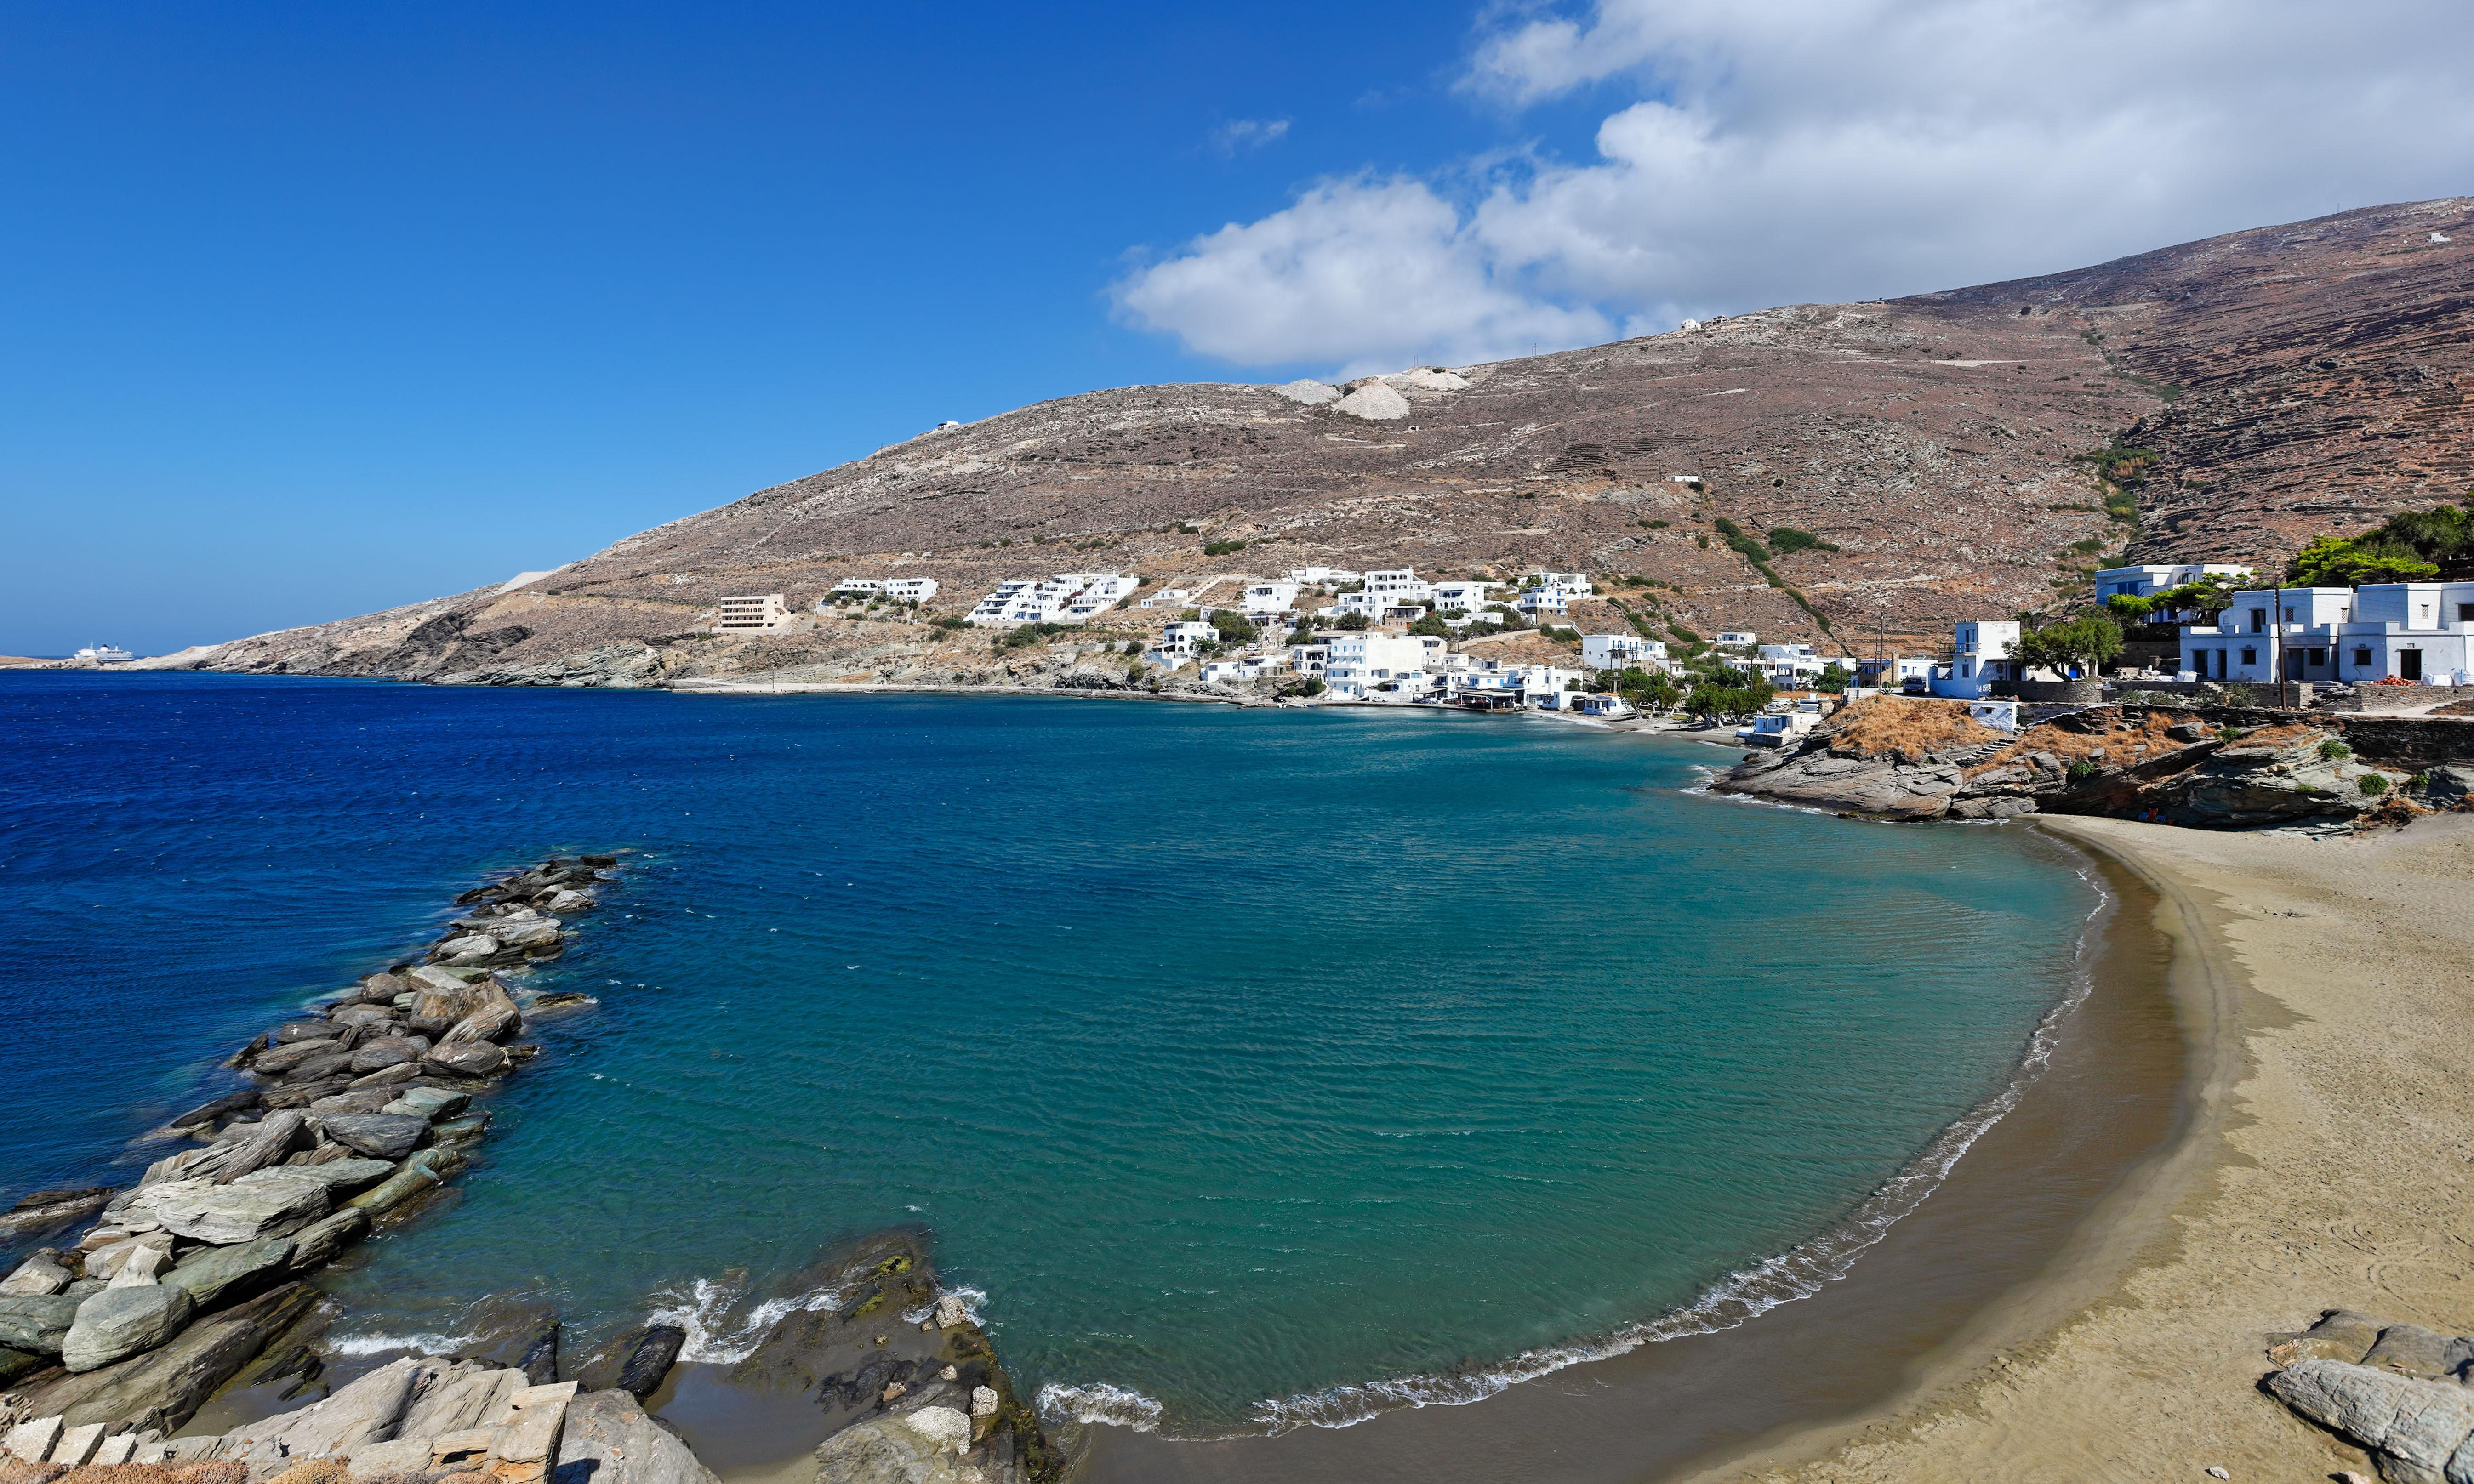 A taste of Greece: the new culinary scene on Tinos island